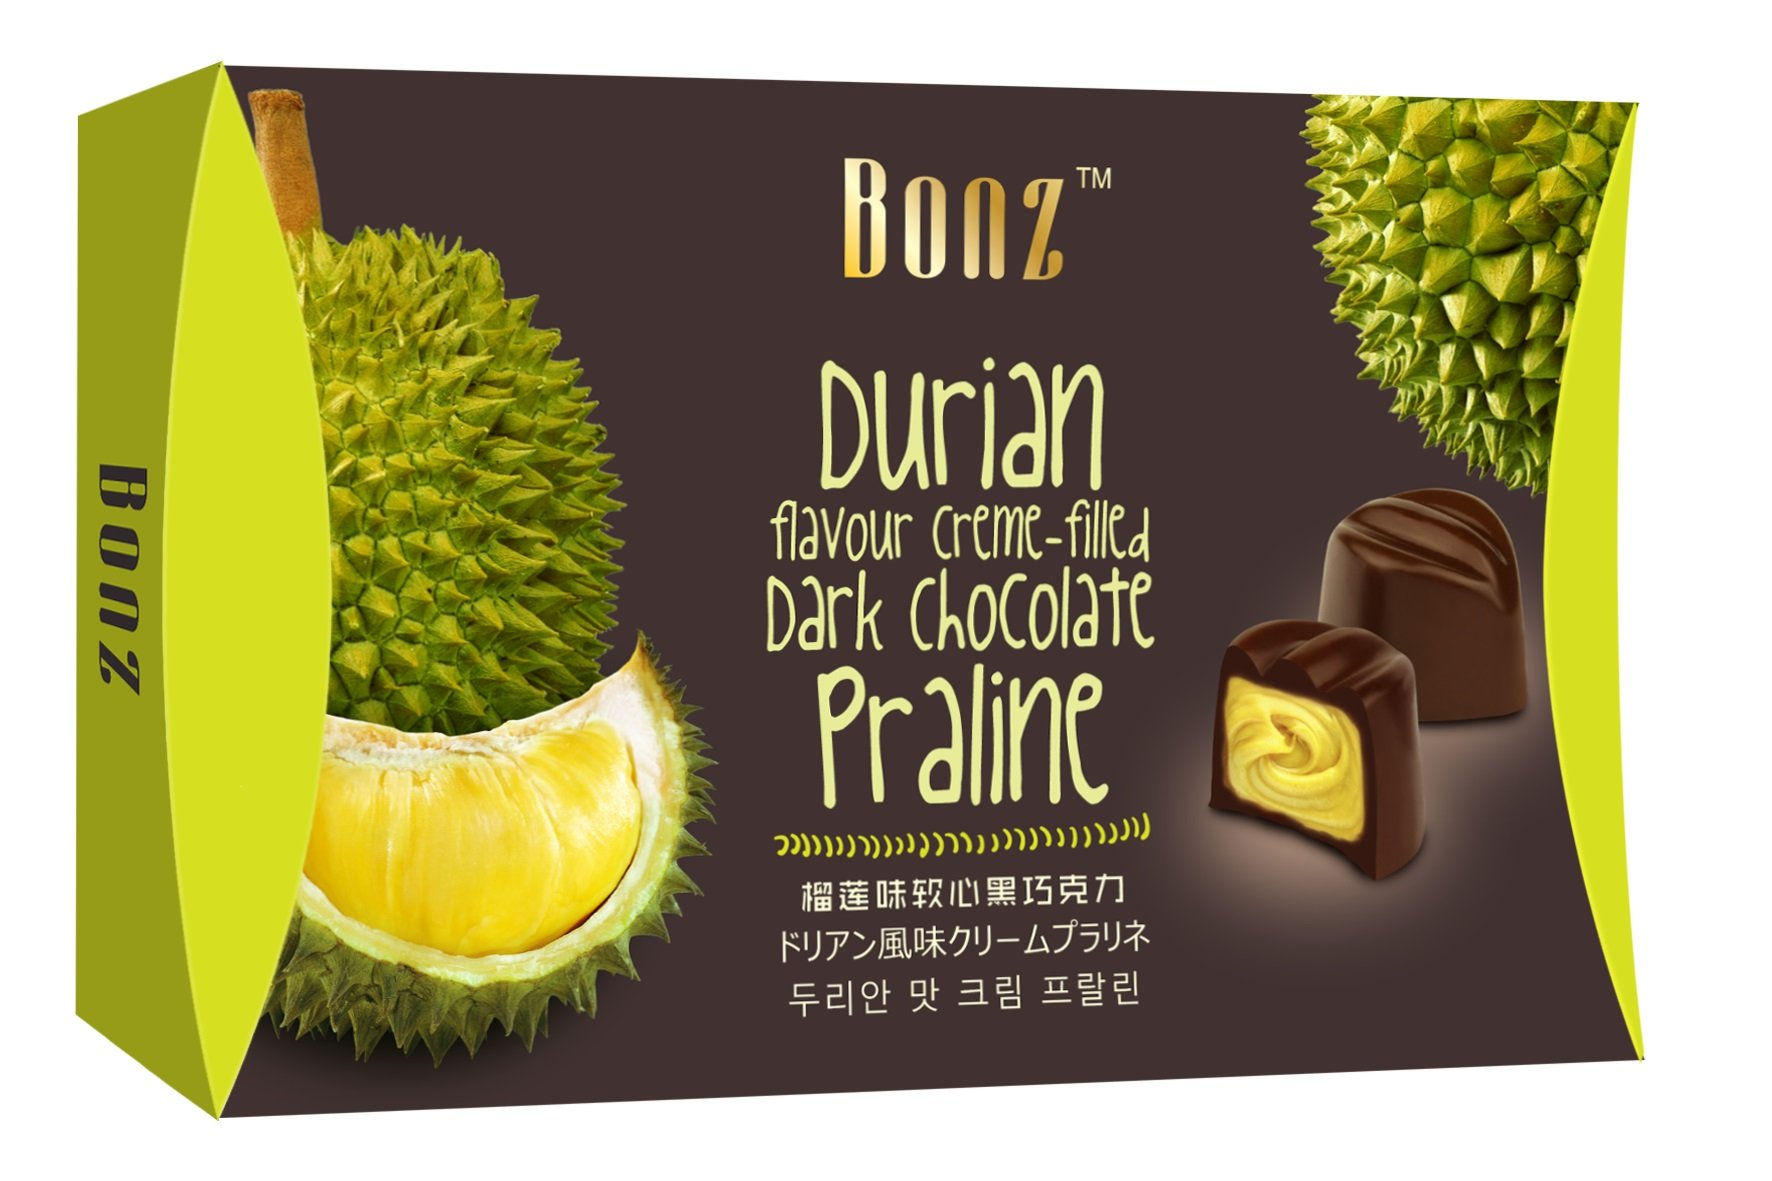 If you are afraid of trying the fruit grab some Durian Chocolate instead.